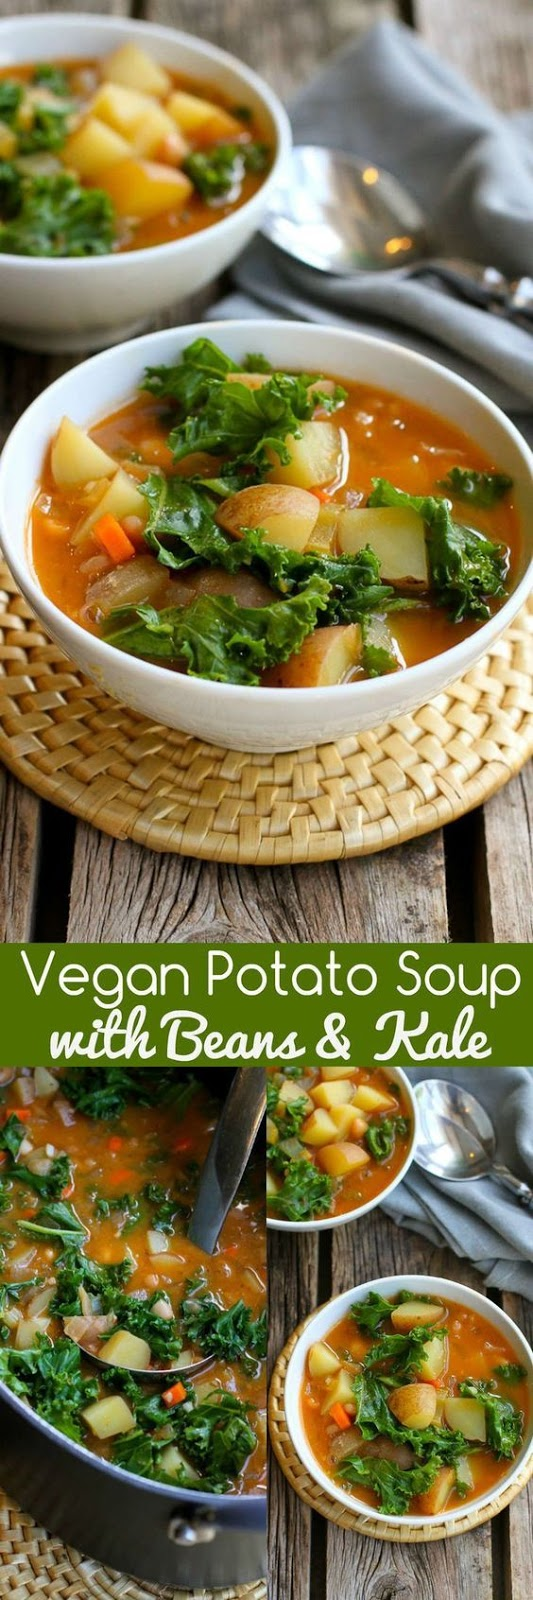 Vegan Potato Soup With Beans & Kale